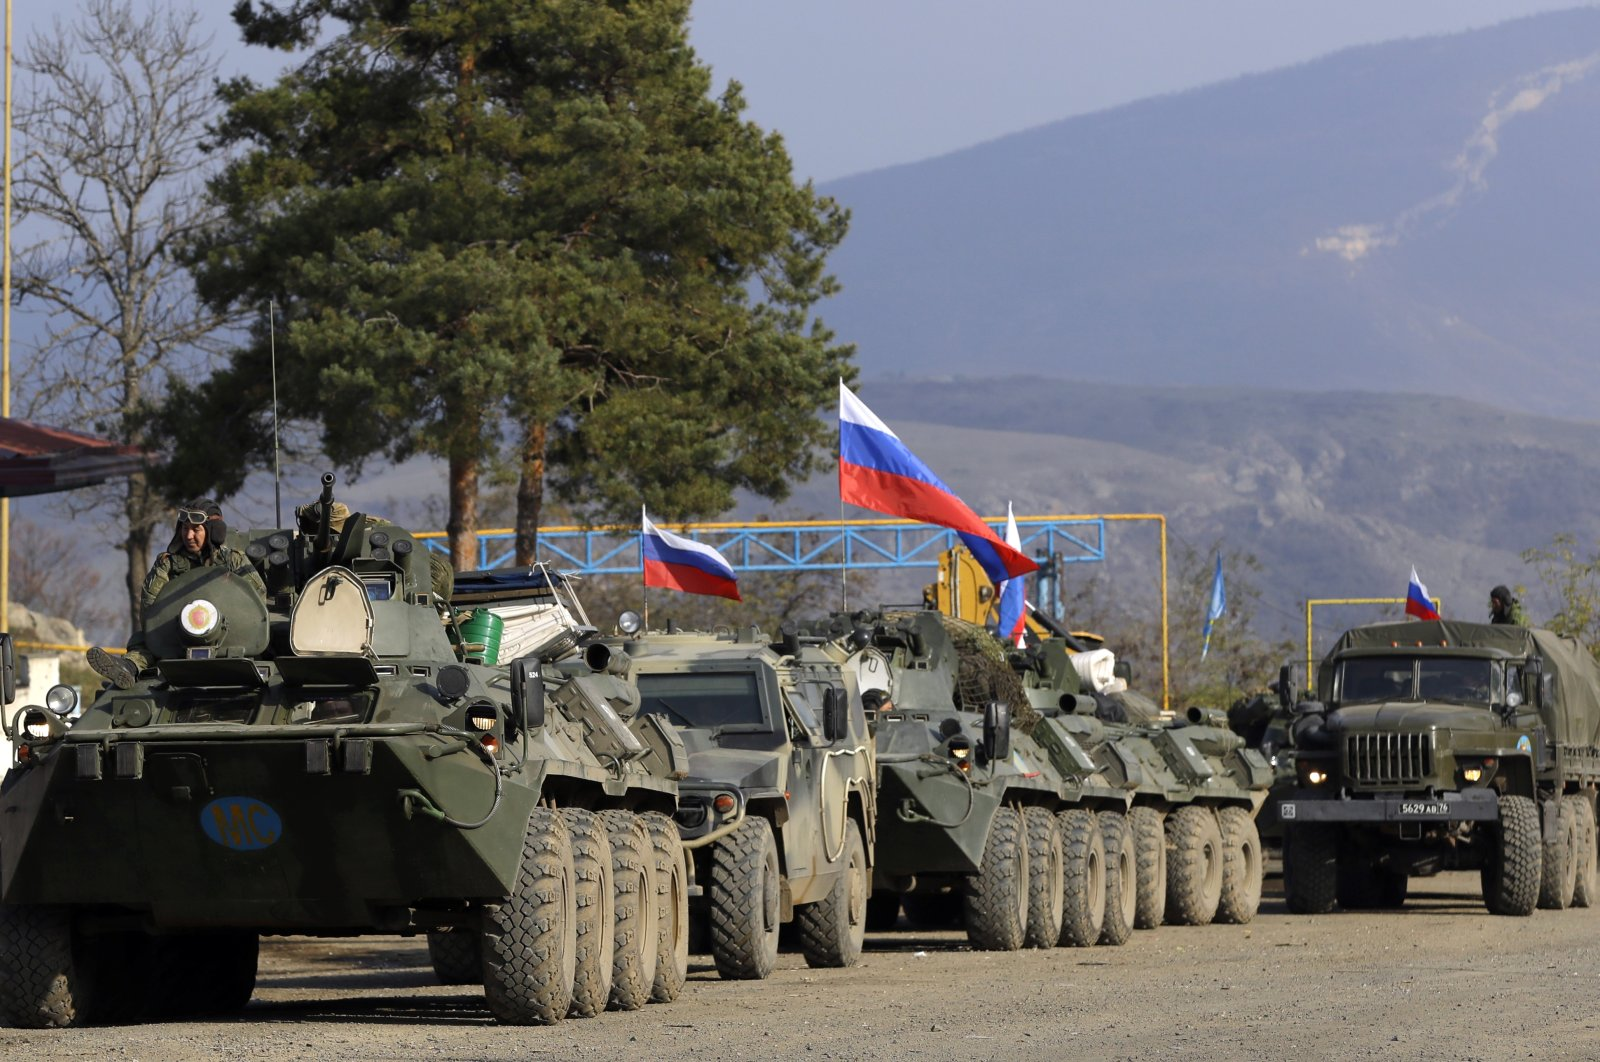 Russian peacekeepers' military vehicles with Russian national flags parked at a checkpoint on the road to Shusha in the region of Nagorno-Karabakh, Nov. 17, 2020. (AP Photo)